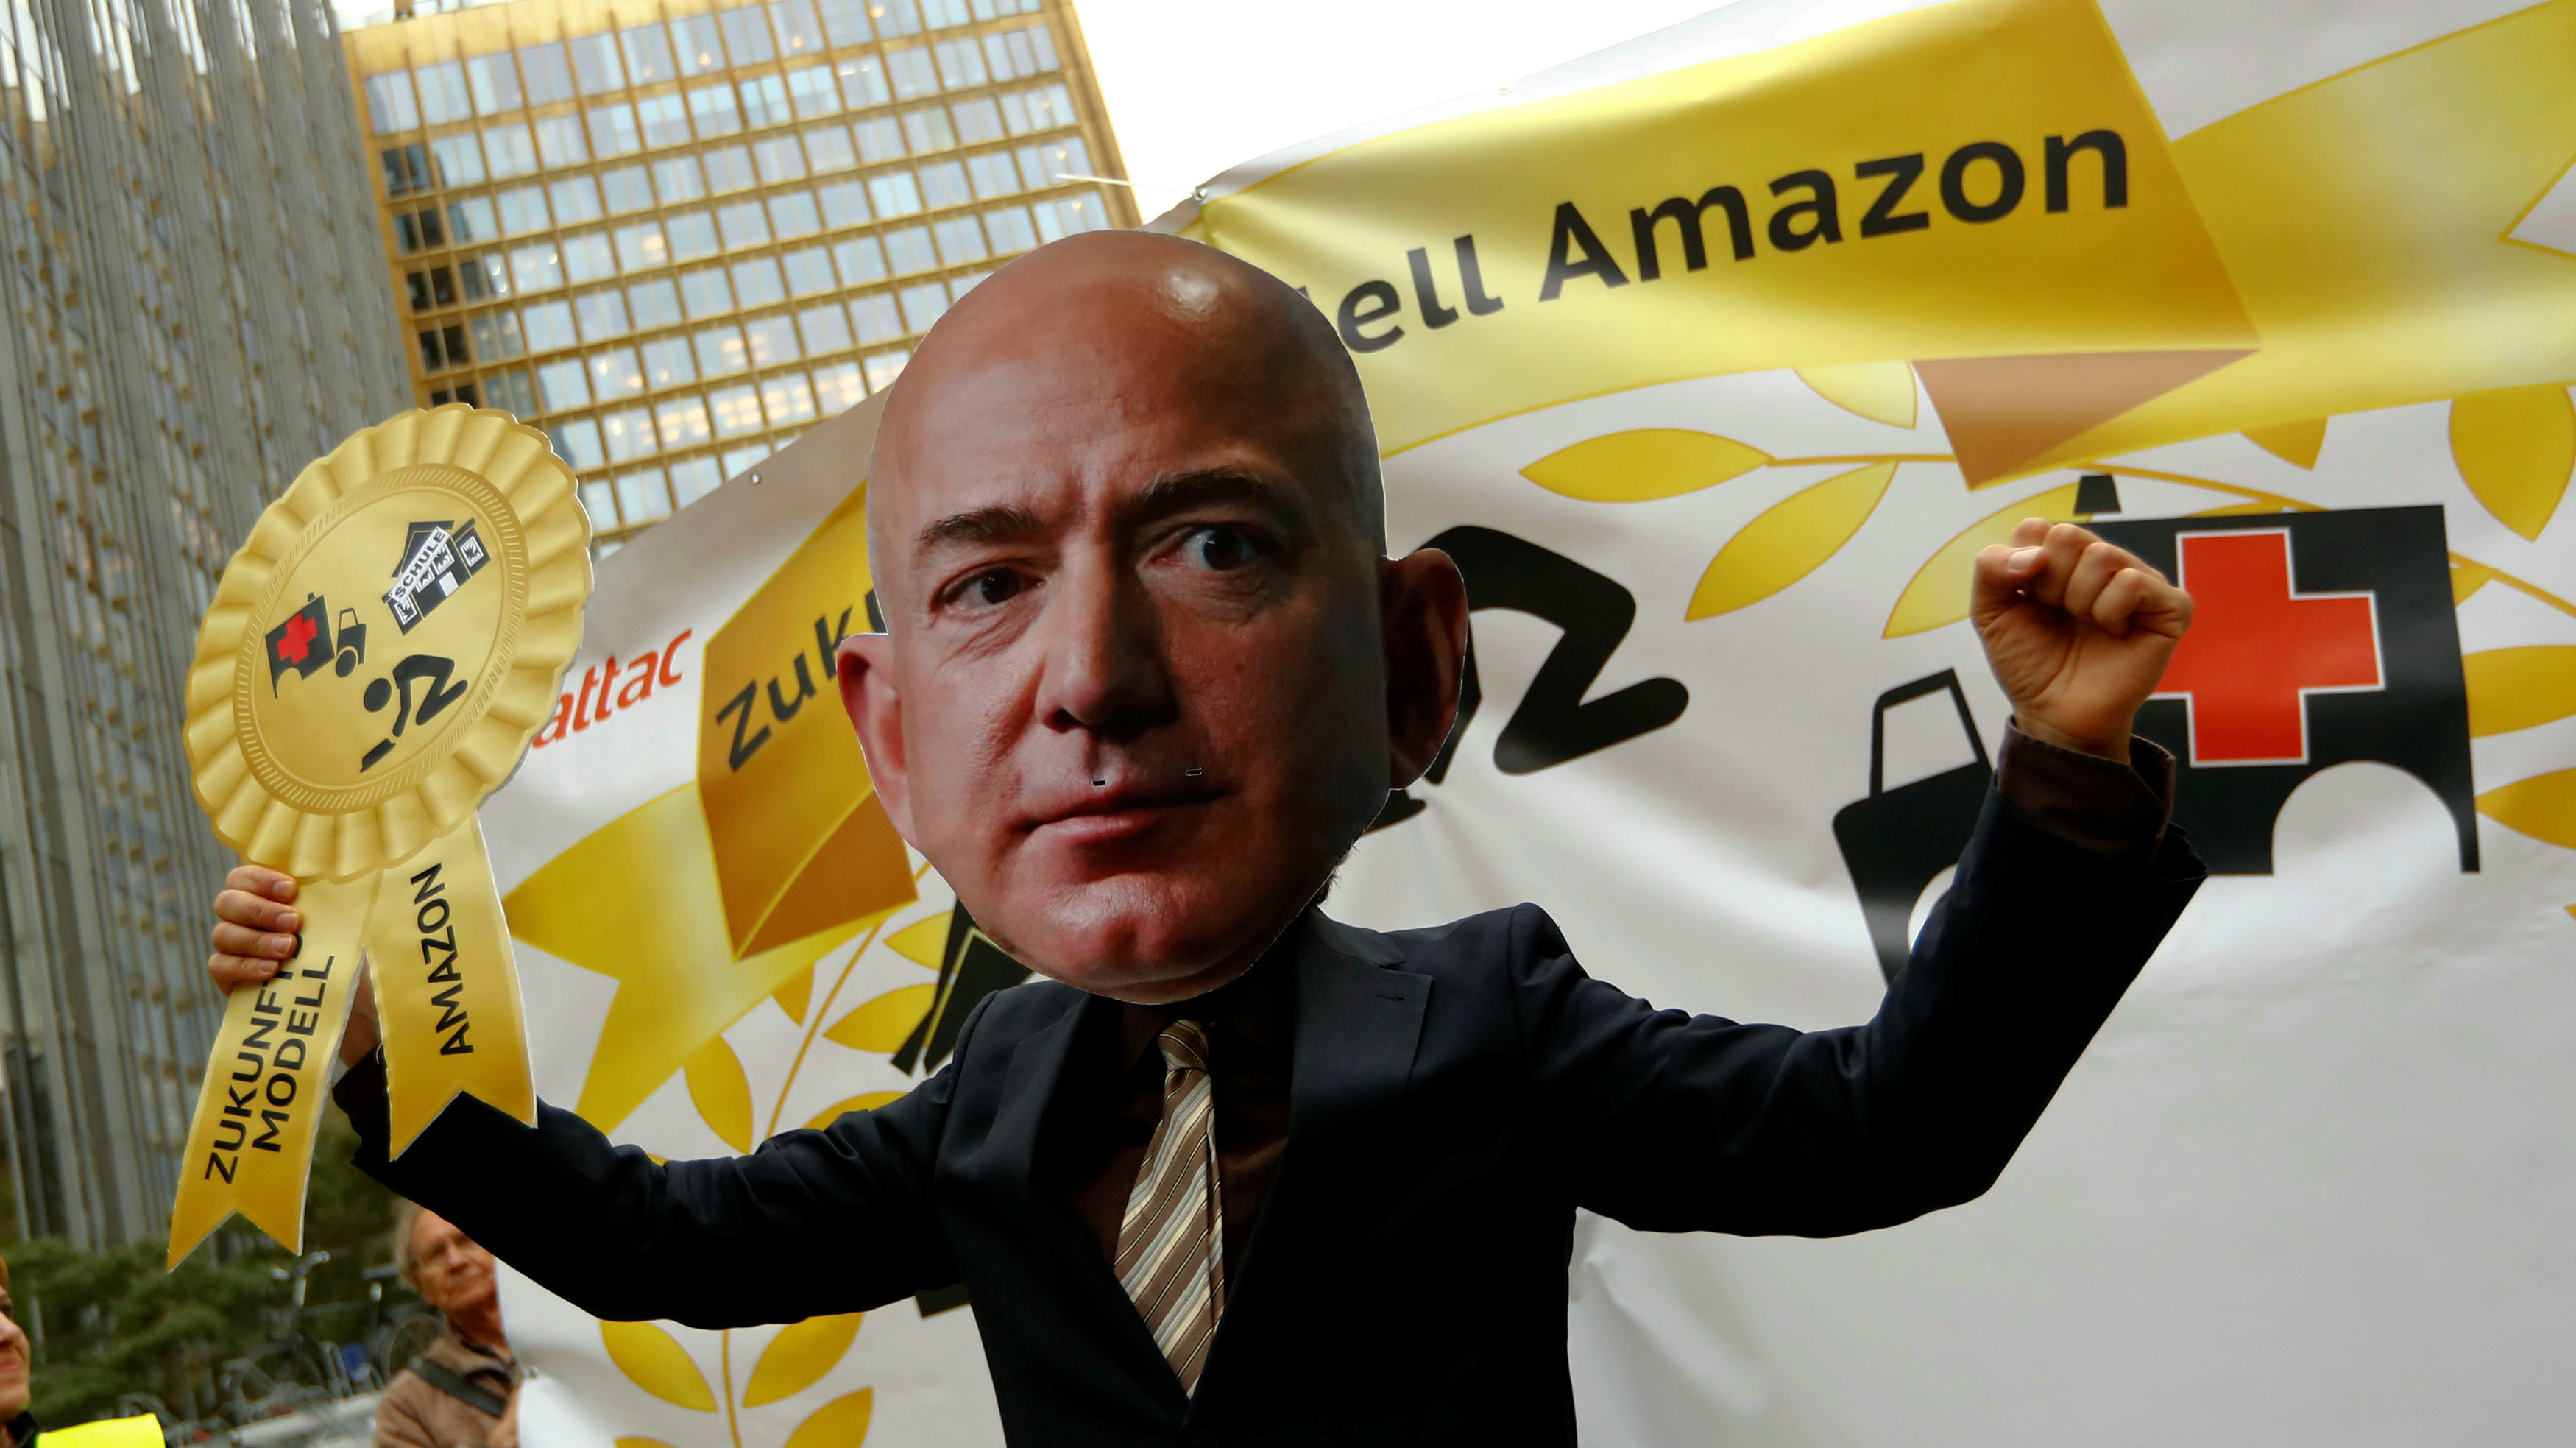 Amazon shares rise as Q1 earnings beat expectations with 43% revenue surge